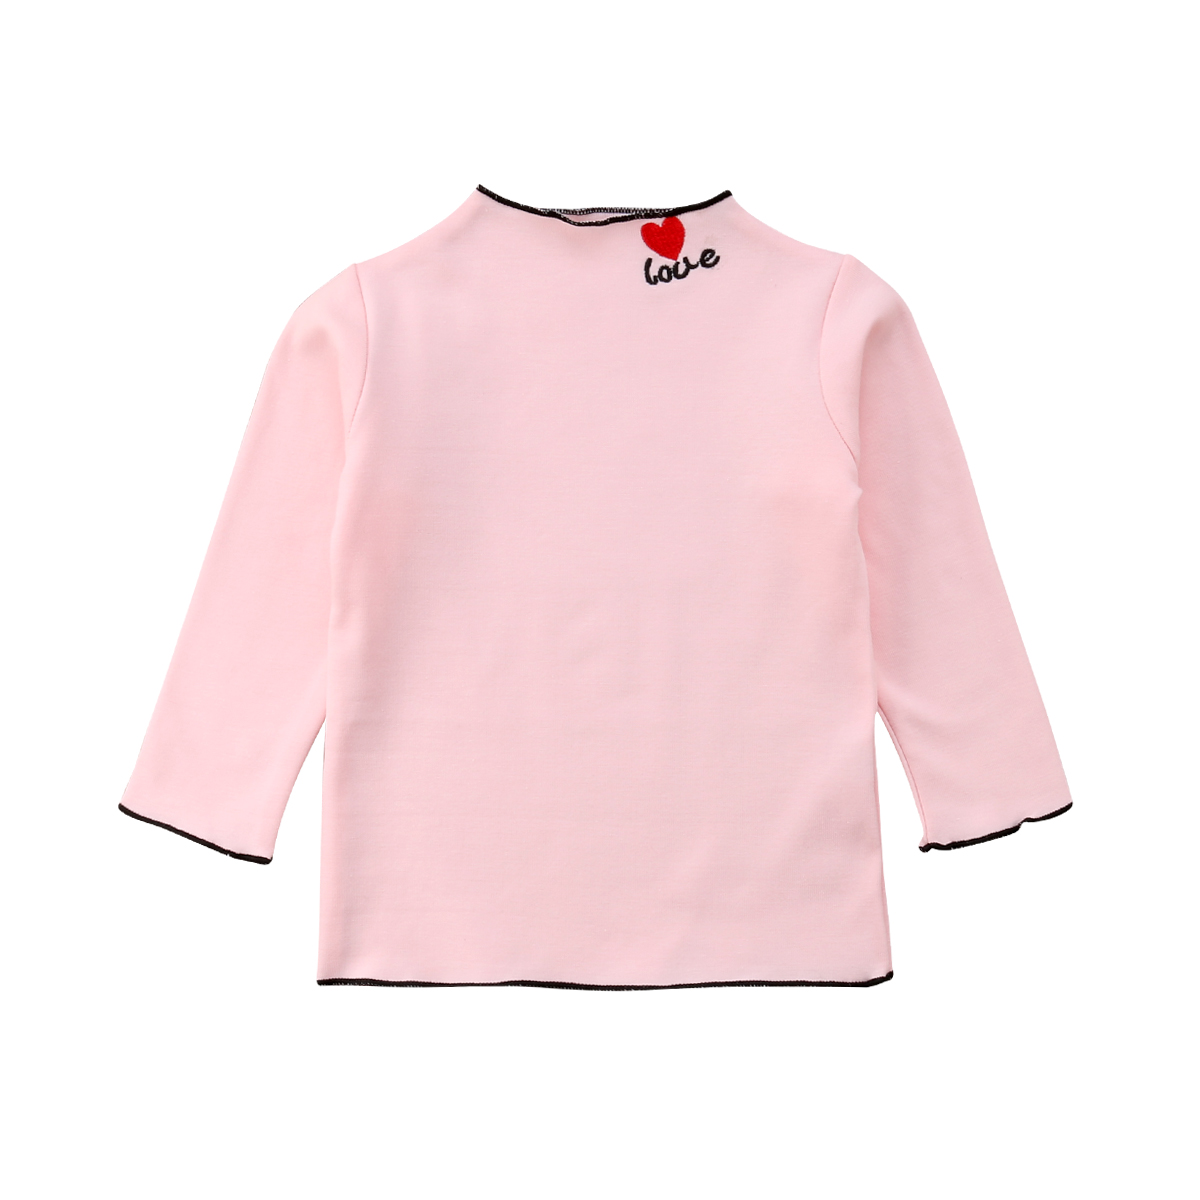 Autumn New Cotton Toddler Baby Girl Boy T-shirt Long Sleeve Kids Clothes Age 1 2 3 4 5 T